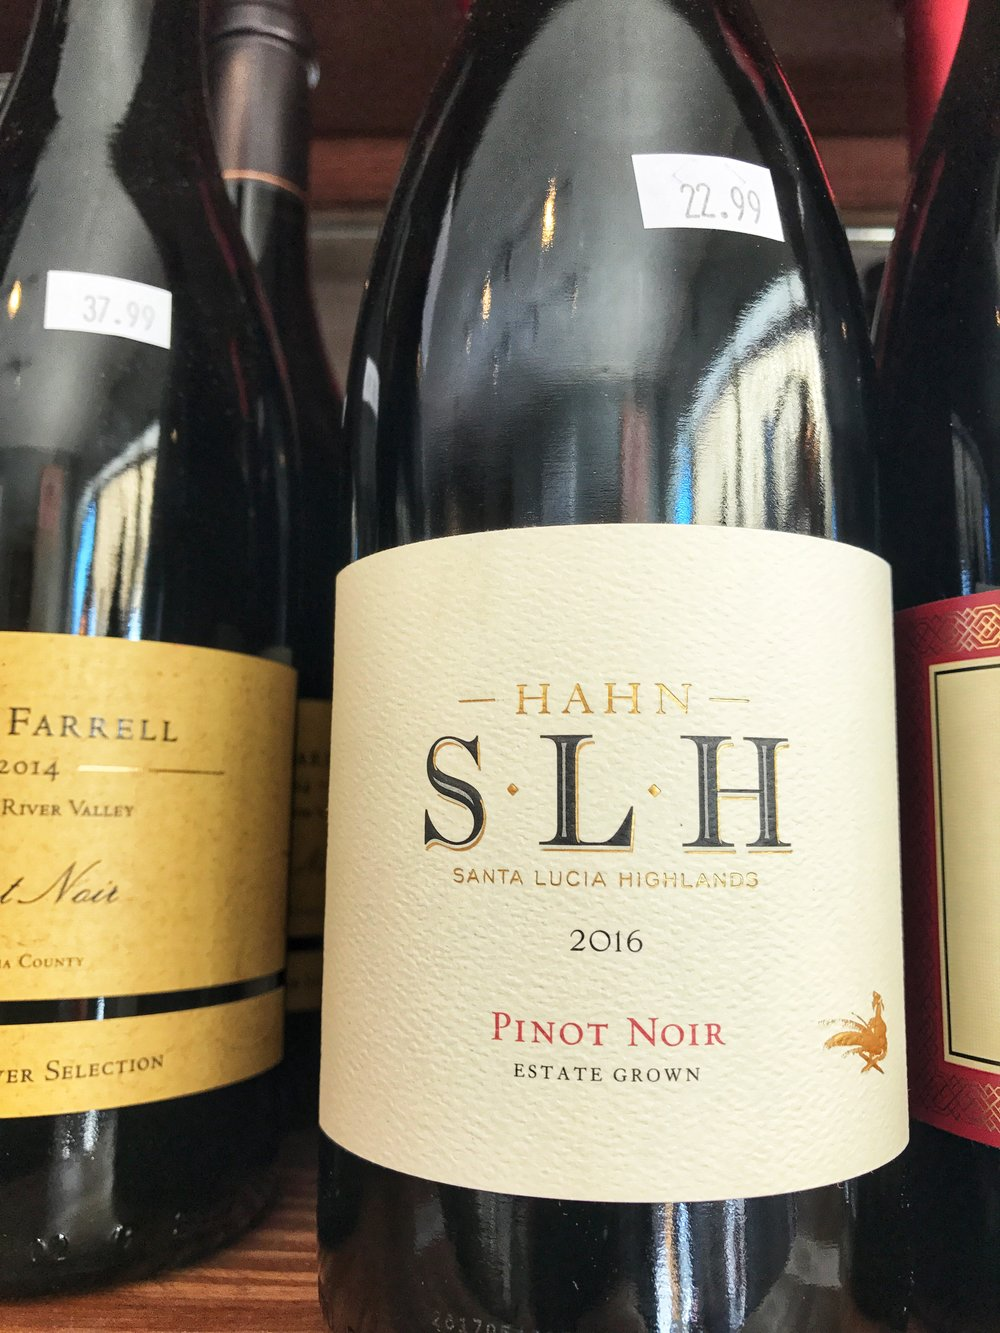 2016 Hahn SLH Pinot Noir, Santa Lucia Highlands $22.99 - A perennial favorite and always a stellar value.    Tasting NotesAromas of bright red cherry, strawberry with hints of earth, spices, and toasty oak. An explosion of red fruit including strawberry, cherry and raspberry welcome the palate finish with refined tannins and a soft mouthfeel.  Vineyard Notes55% Smith Vineyard, 30% Doctors Vineyard, 10% Hook Vineyard, 5% Lone Oak Vineyard  Winemaker NotesAfter the fruit has been carefully picked and sorted, it is fermented in open-top stainless steel tanks. We then age this Pinot Noir for up to 11 months in a selection of small, 60-gallon French oak barrels. When the wine is ready to be blended, our winemaker selects only those barrels that exemplify the aromas and flavors of the Santa Lucia Highlands.